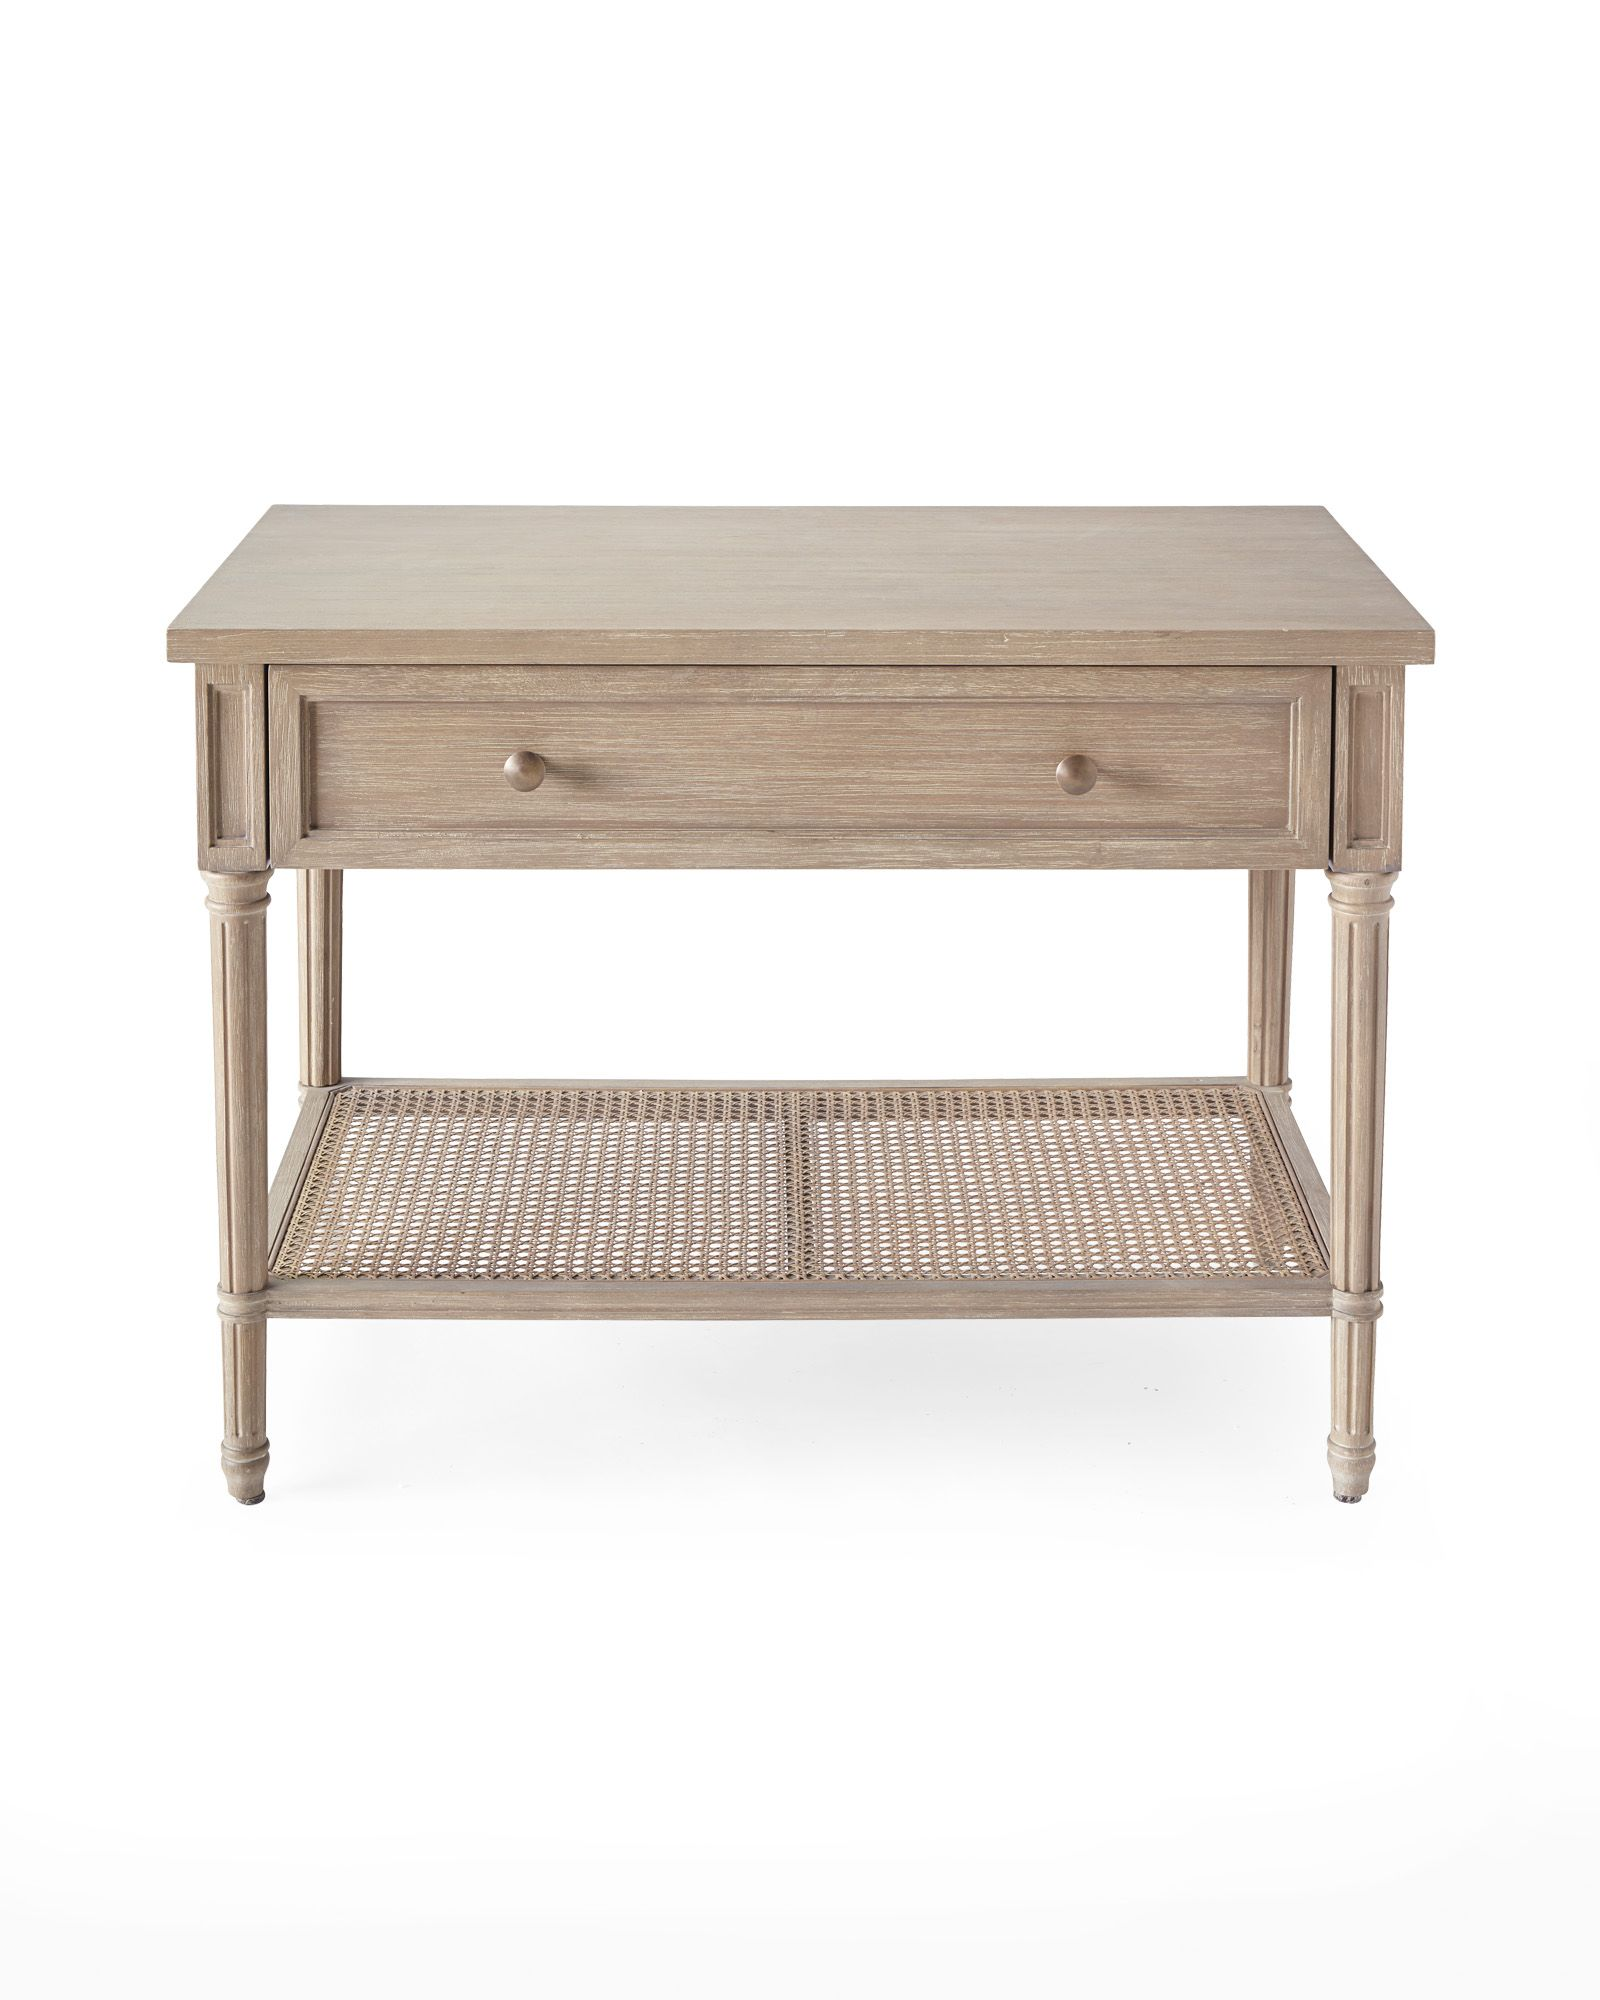 Harbour Cane Nightstand Somerville Houseaccent Tablesconsole